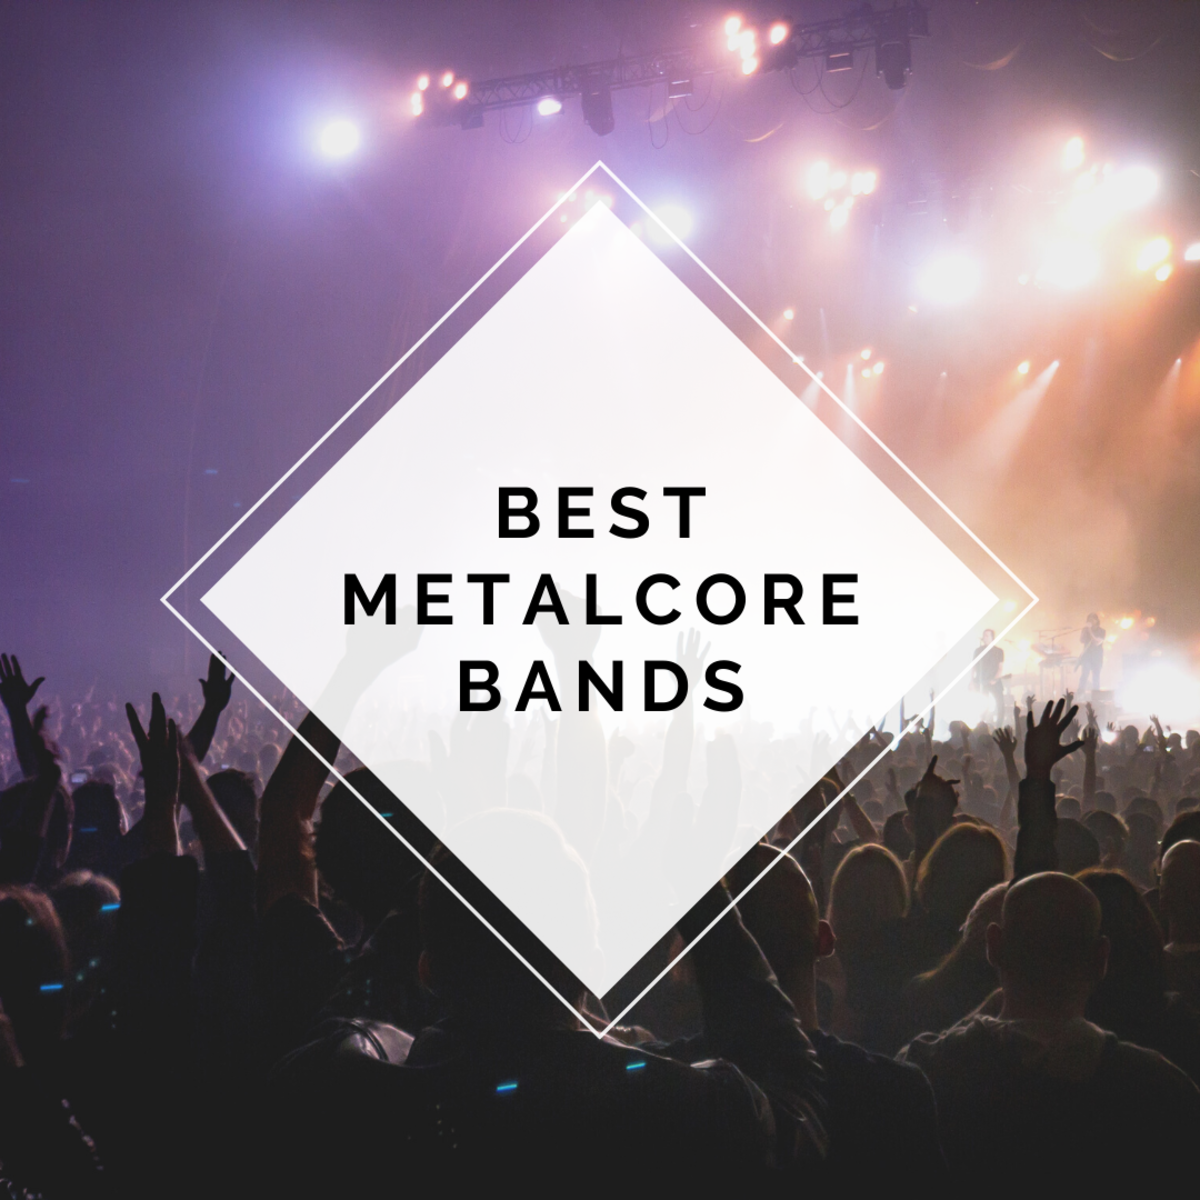 Metalcore is not just a passing phase, see which bands are the very best and will stand the test of time.